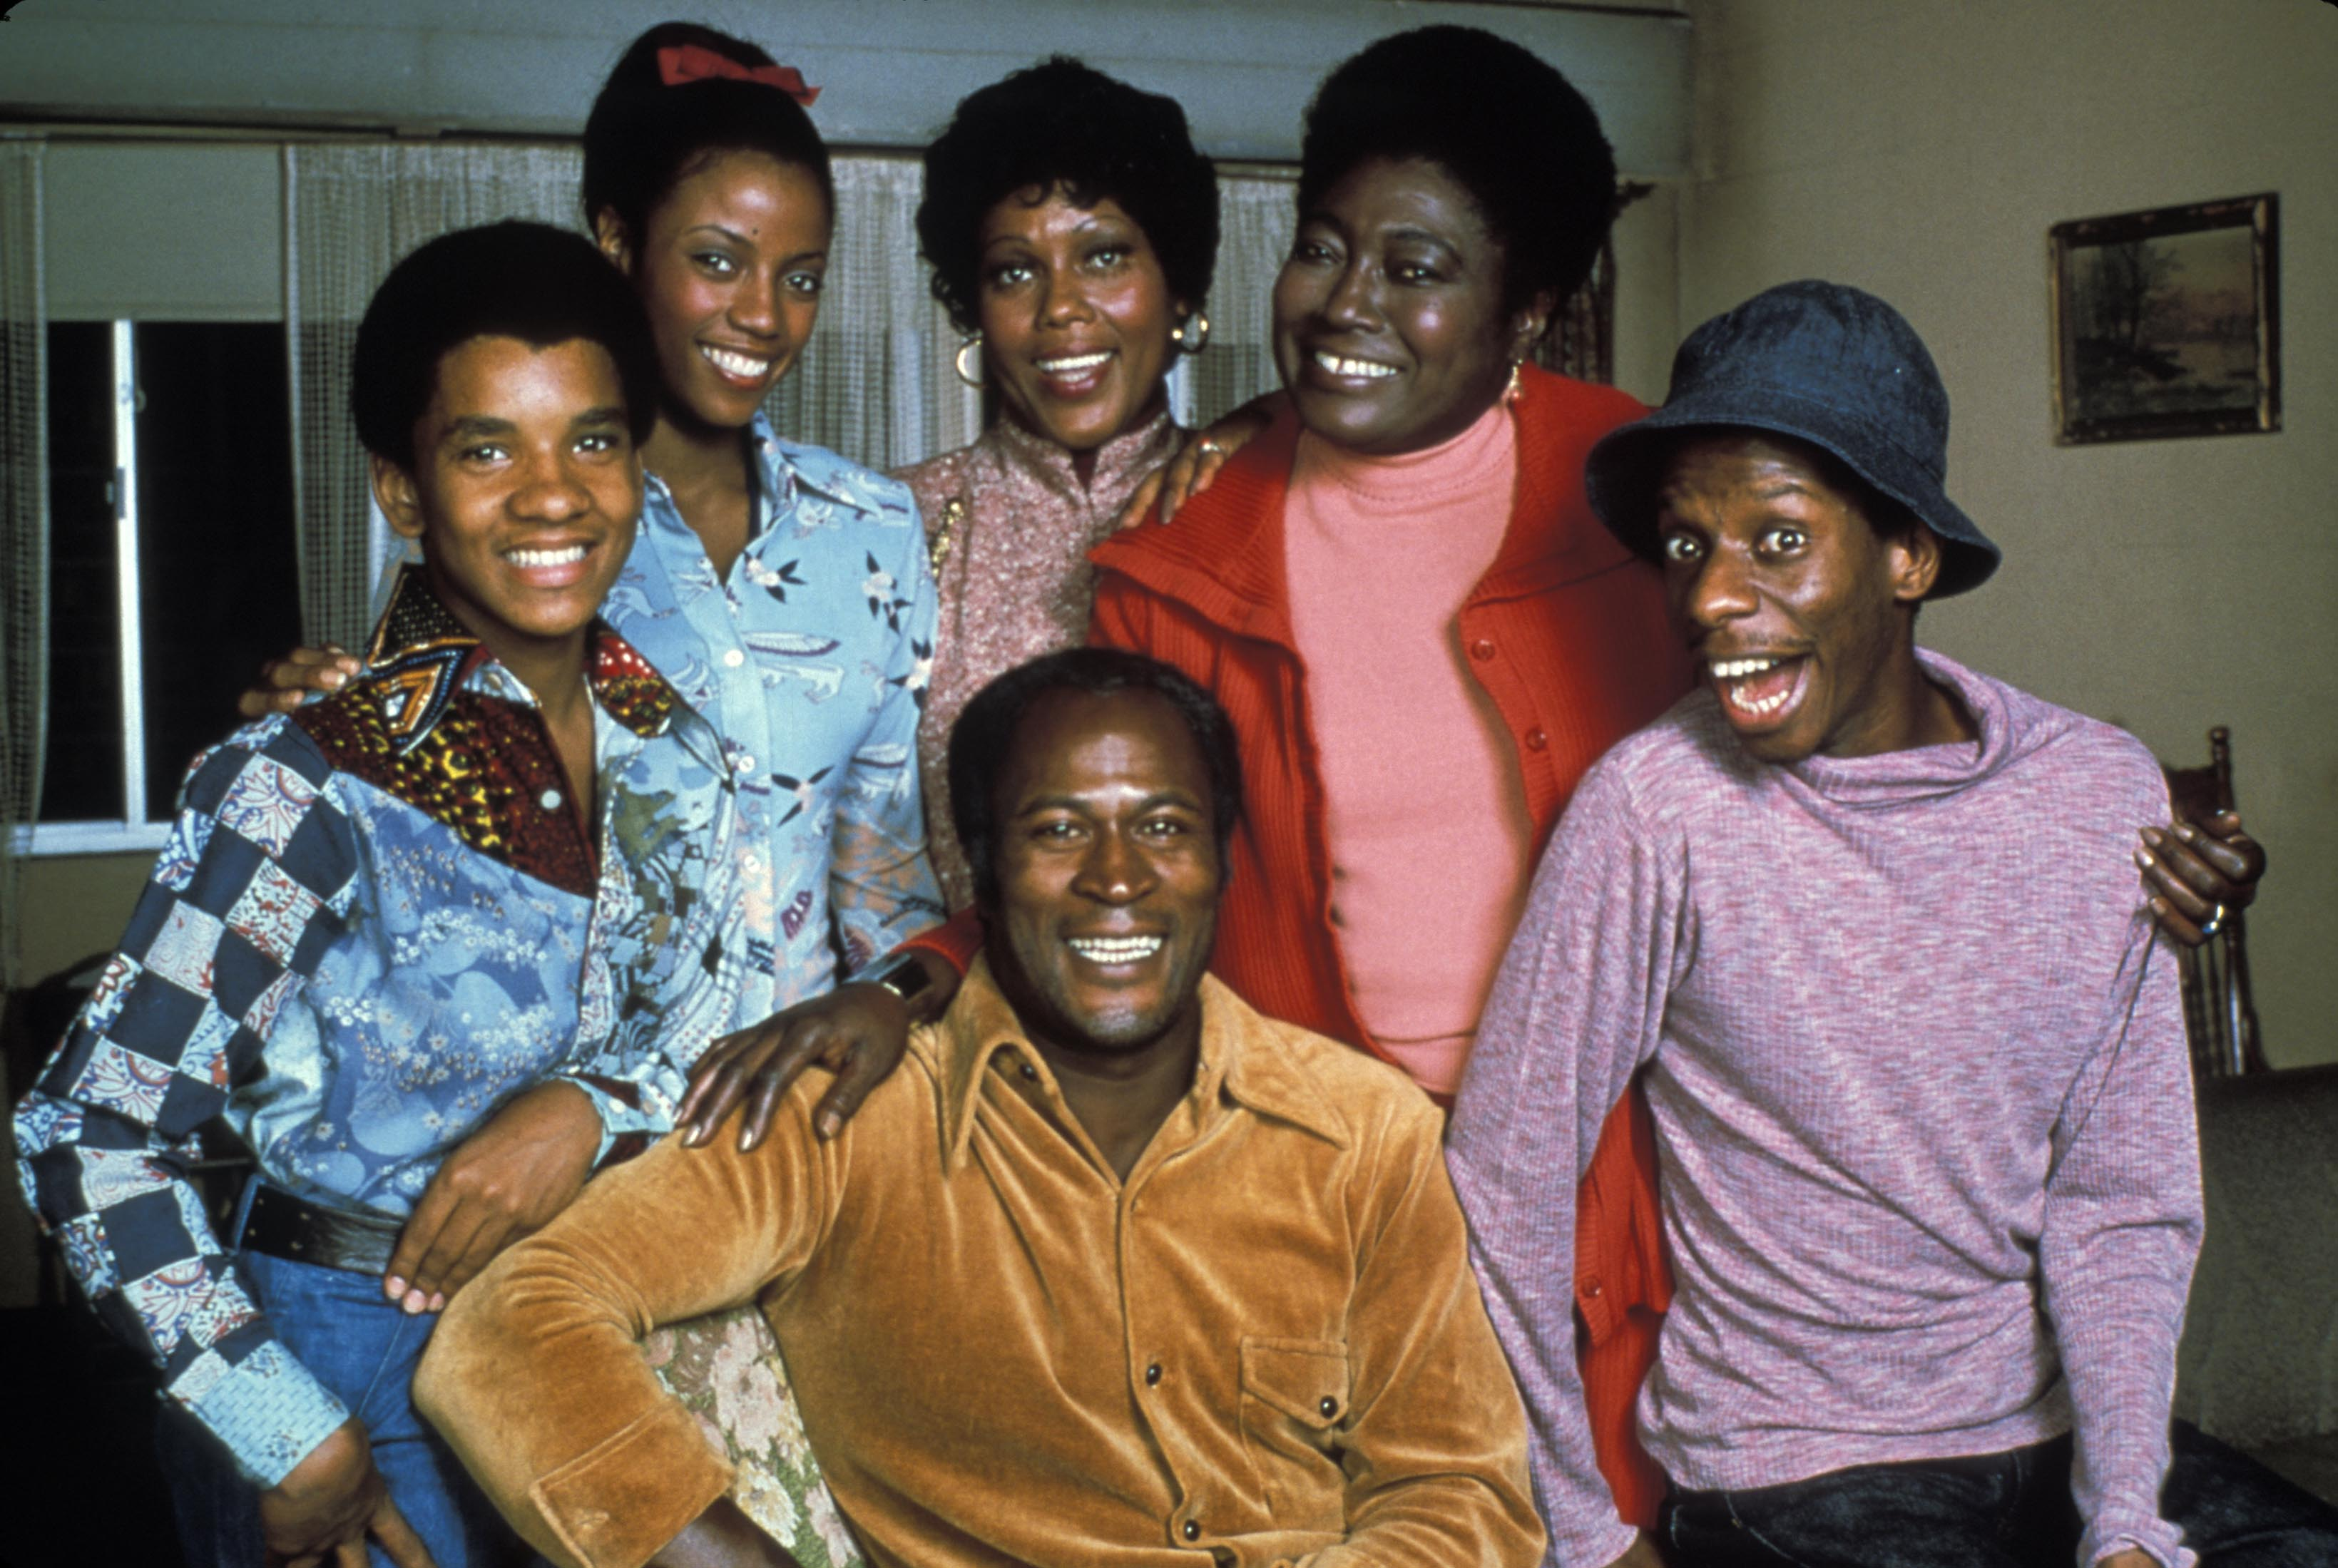 No Merchandising. Editorial Use Only. No Book Cover Usage.Mandatory Credit: Photo by Bud Yorkin/Norman Lear/Tandem/Kobal/REX/ (5877020d)Ralph Carter, Bernnadette Stanis, Ja'Net Dubois, Esther Rolle, Jimmie Walker, John AmosGood Times - 1974-1979Bud Yorkin/Norman Lear/Tandem USATelevision